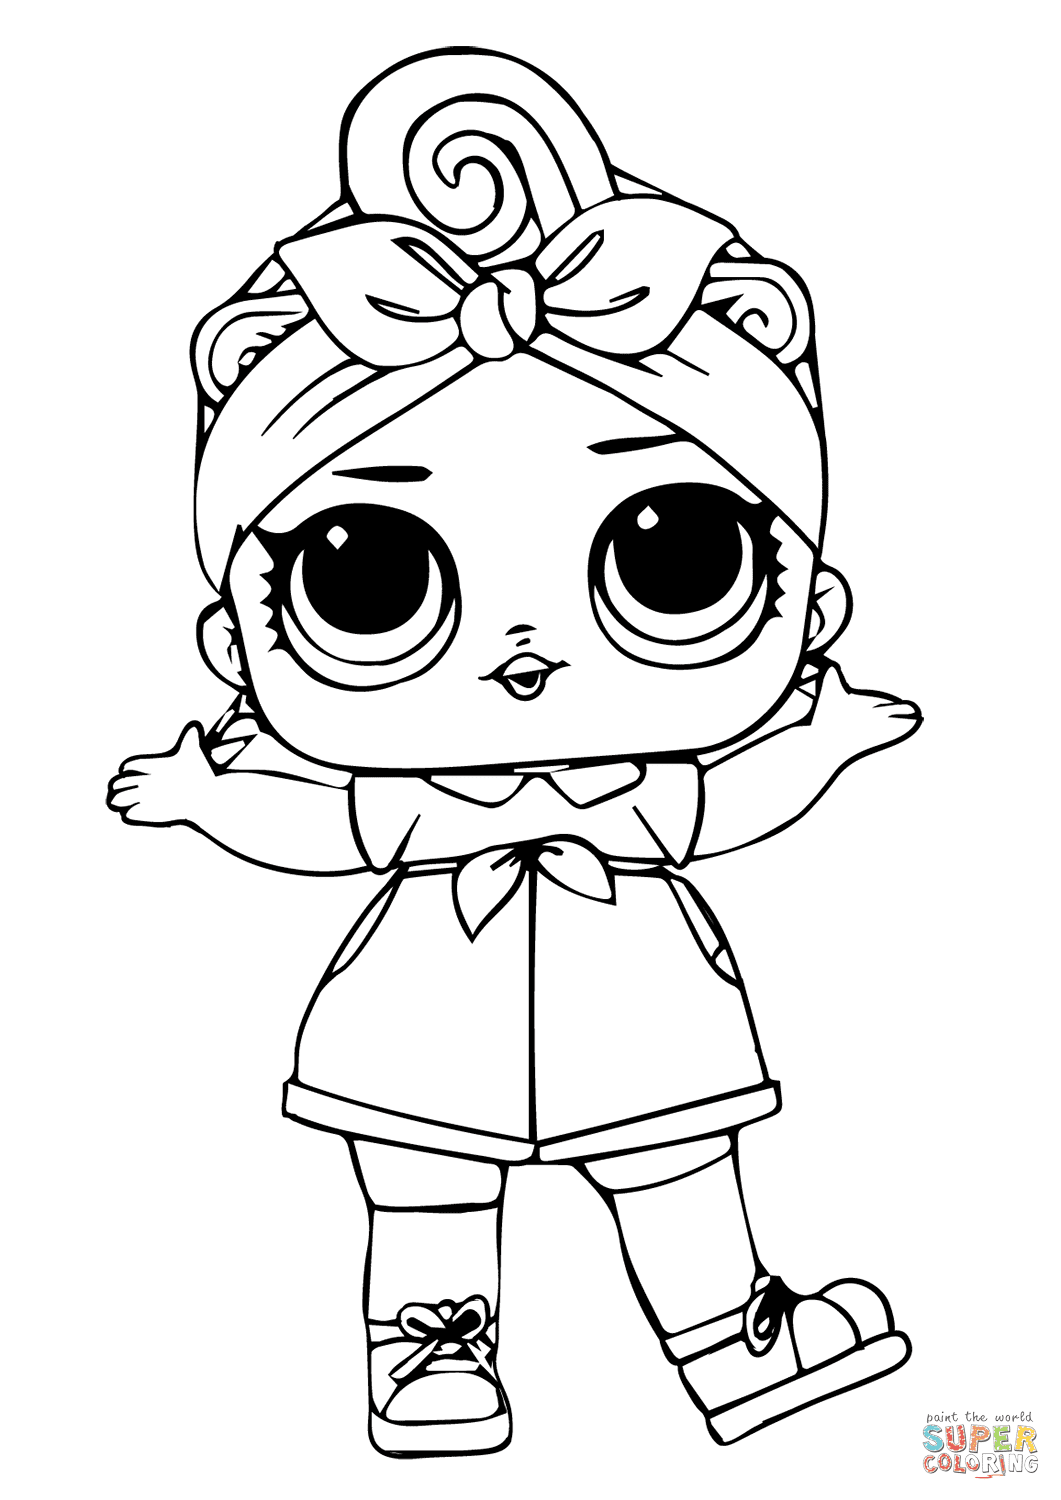 Can Do Baby LOL Surprise Doll coloring page | Free ...